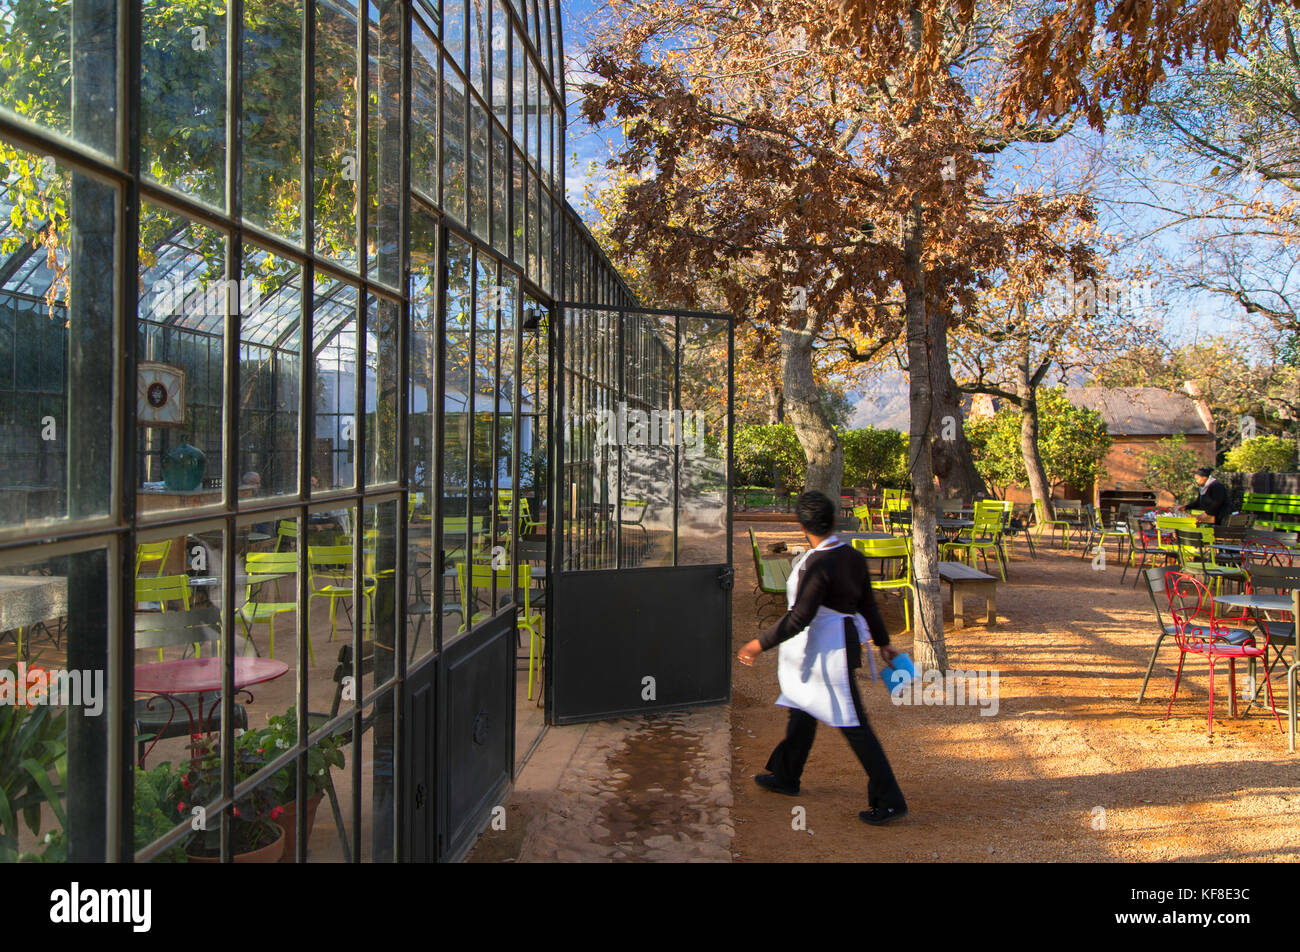 Greenhouse Restaurant at Babylonstoren Wine Estate, Paarl, Western Cape, South Africa - Stock Image